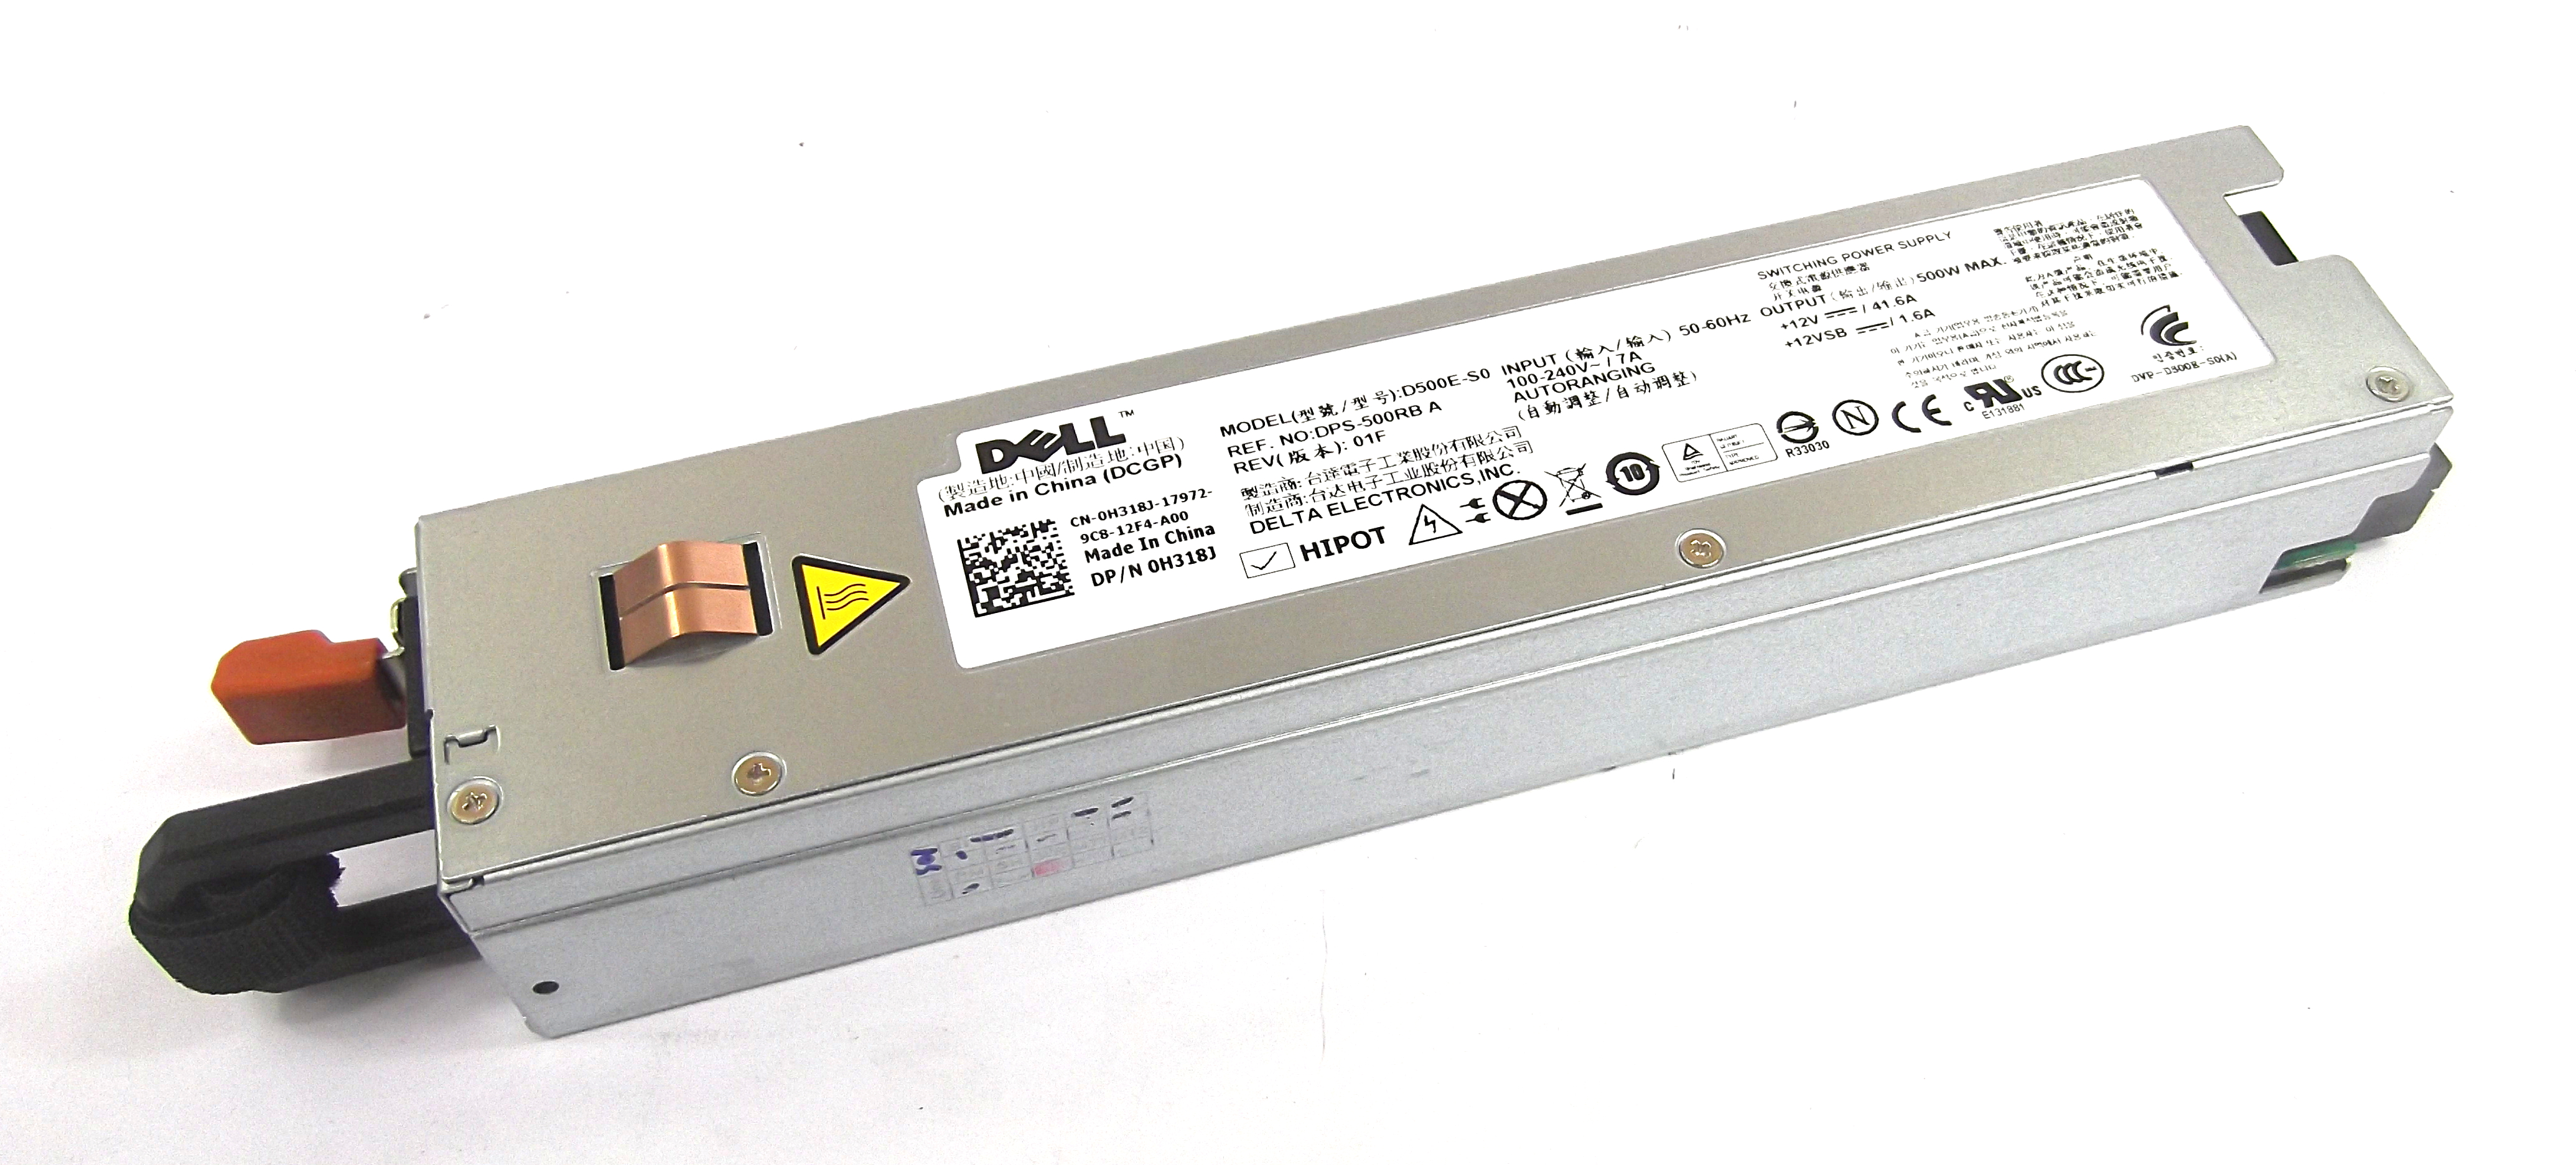 Dell H318J PowerEdge R410 Power Supply - Delta Electronics D500E-S0